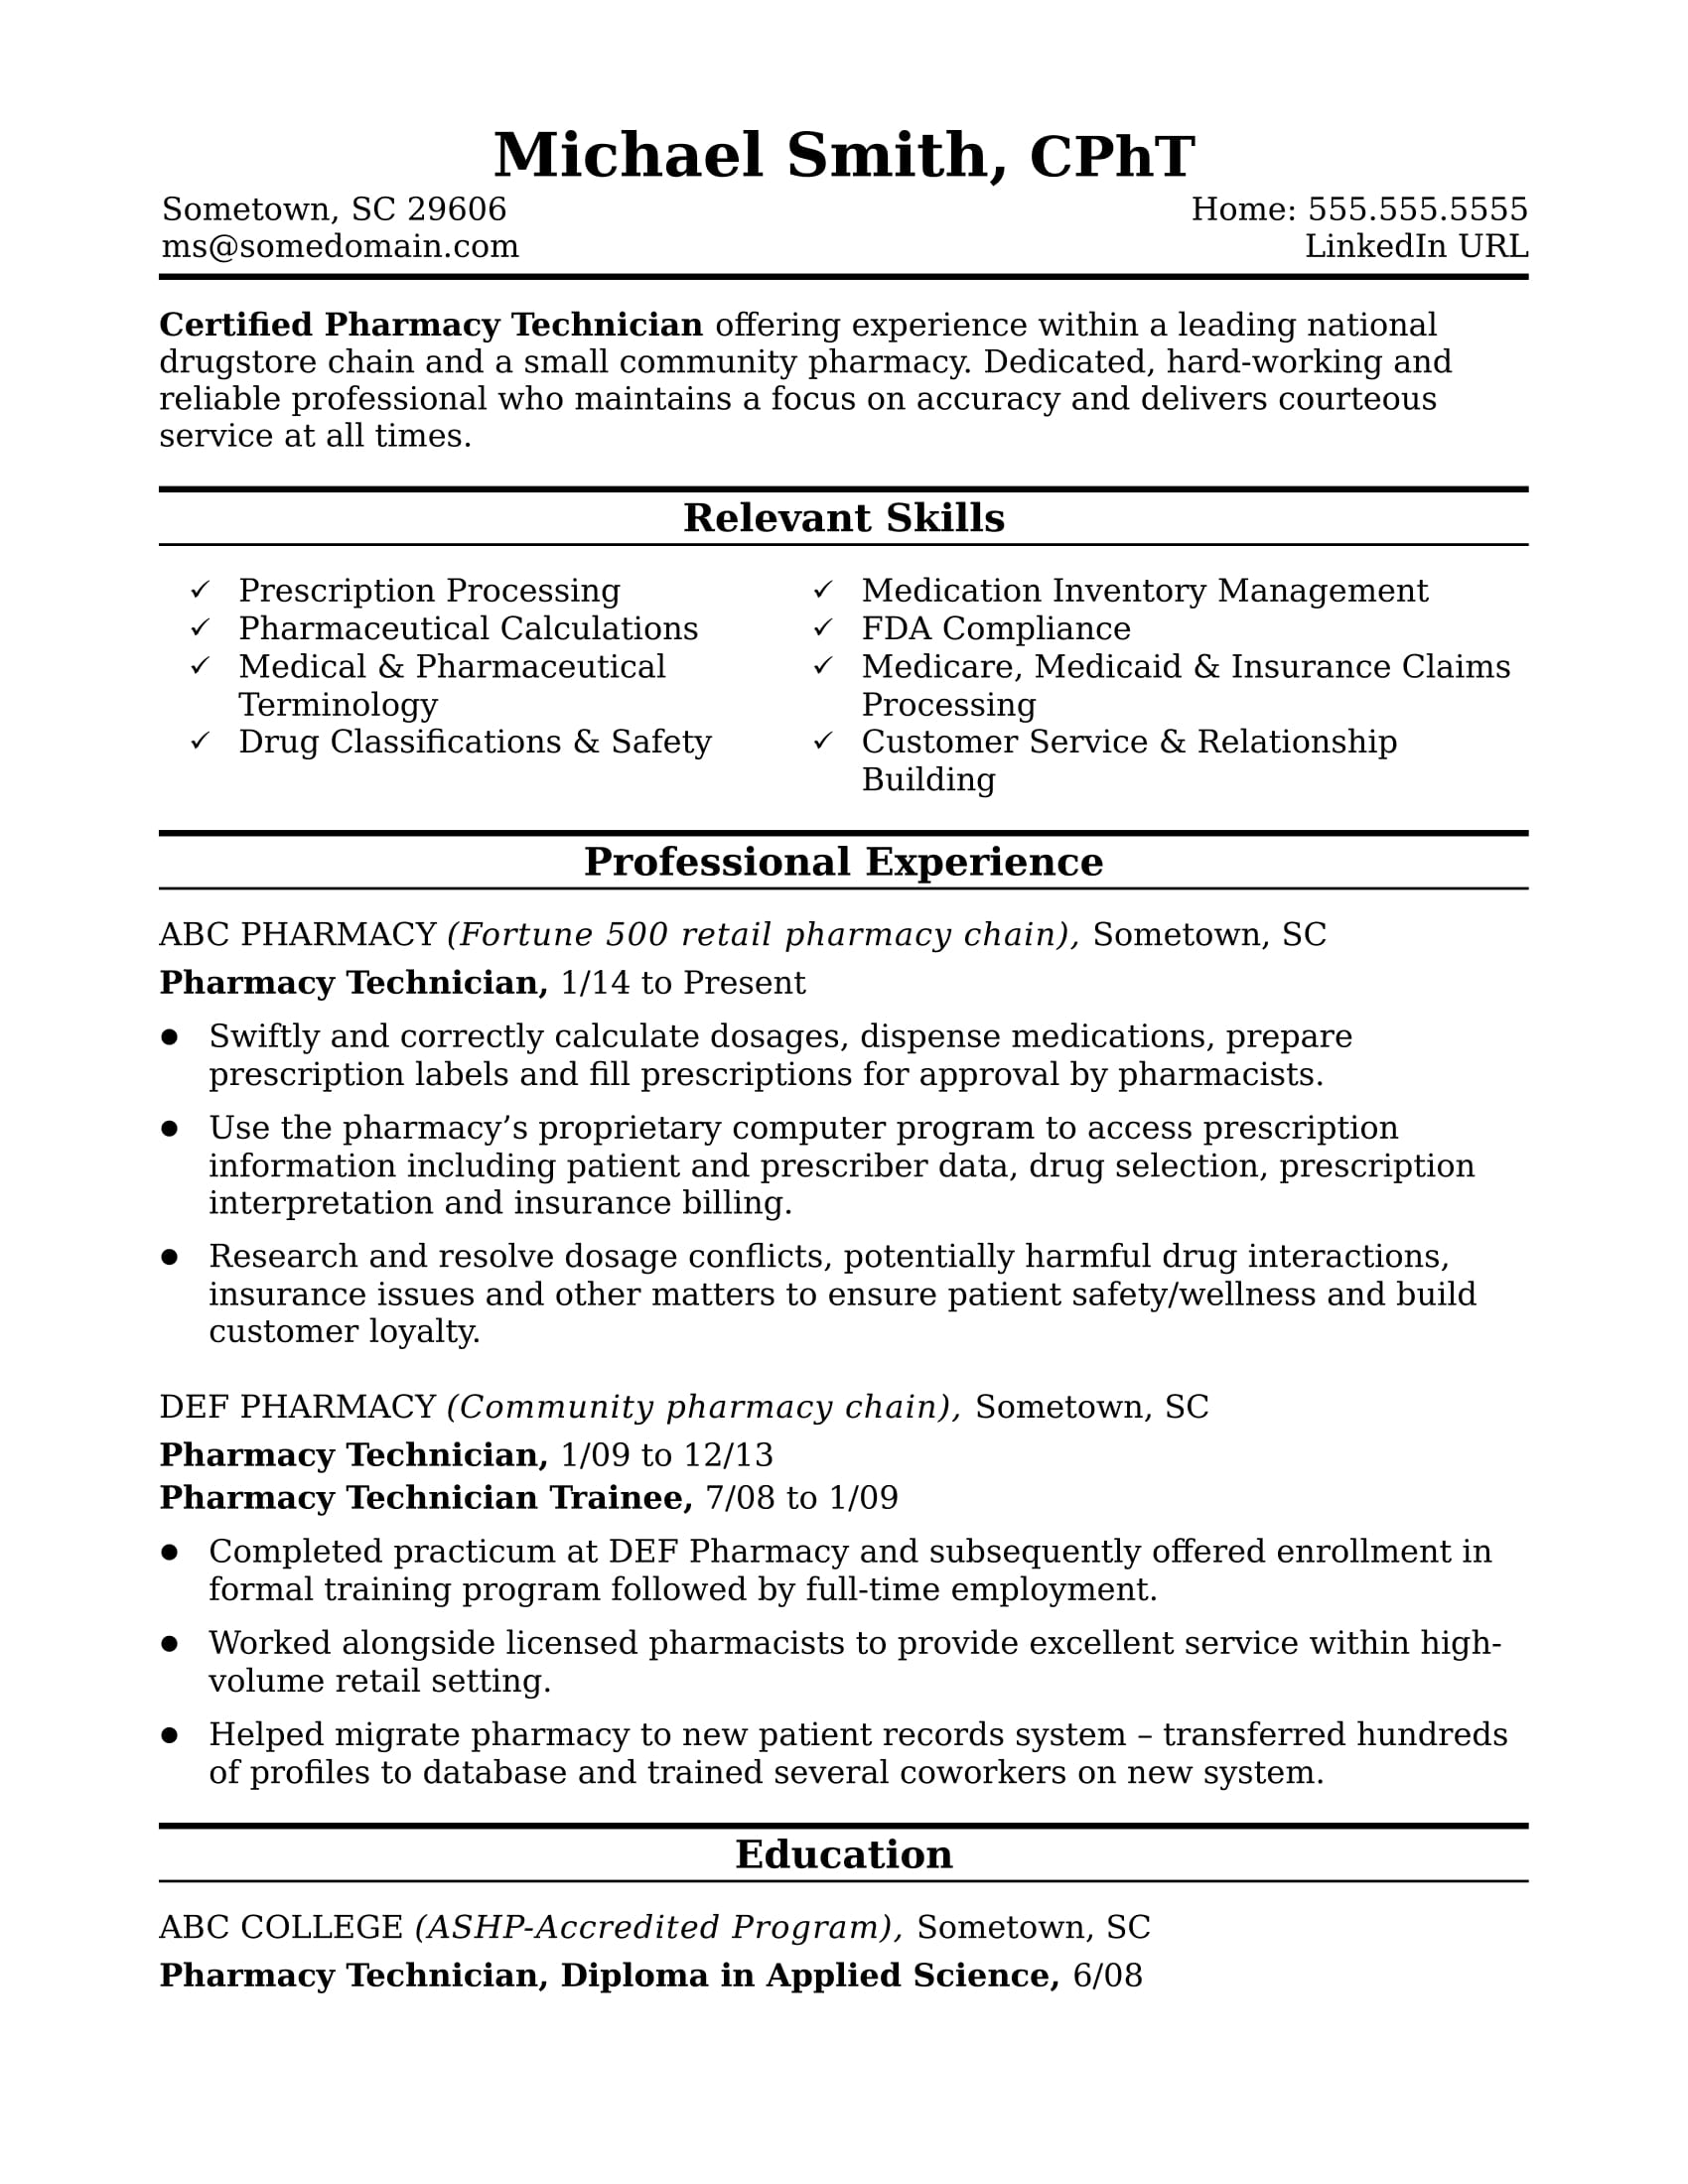 Sample Resume For A Pharmacy Technician  Technical Resume Samples